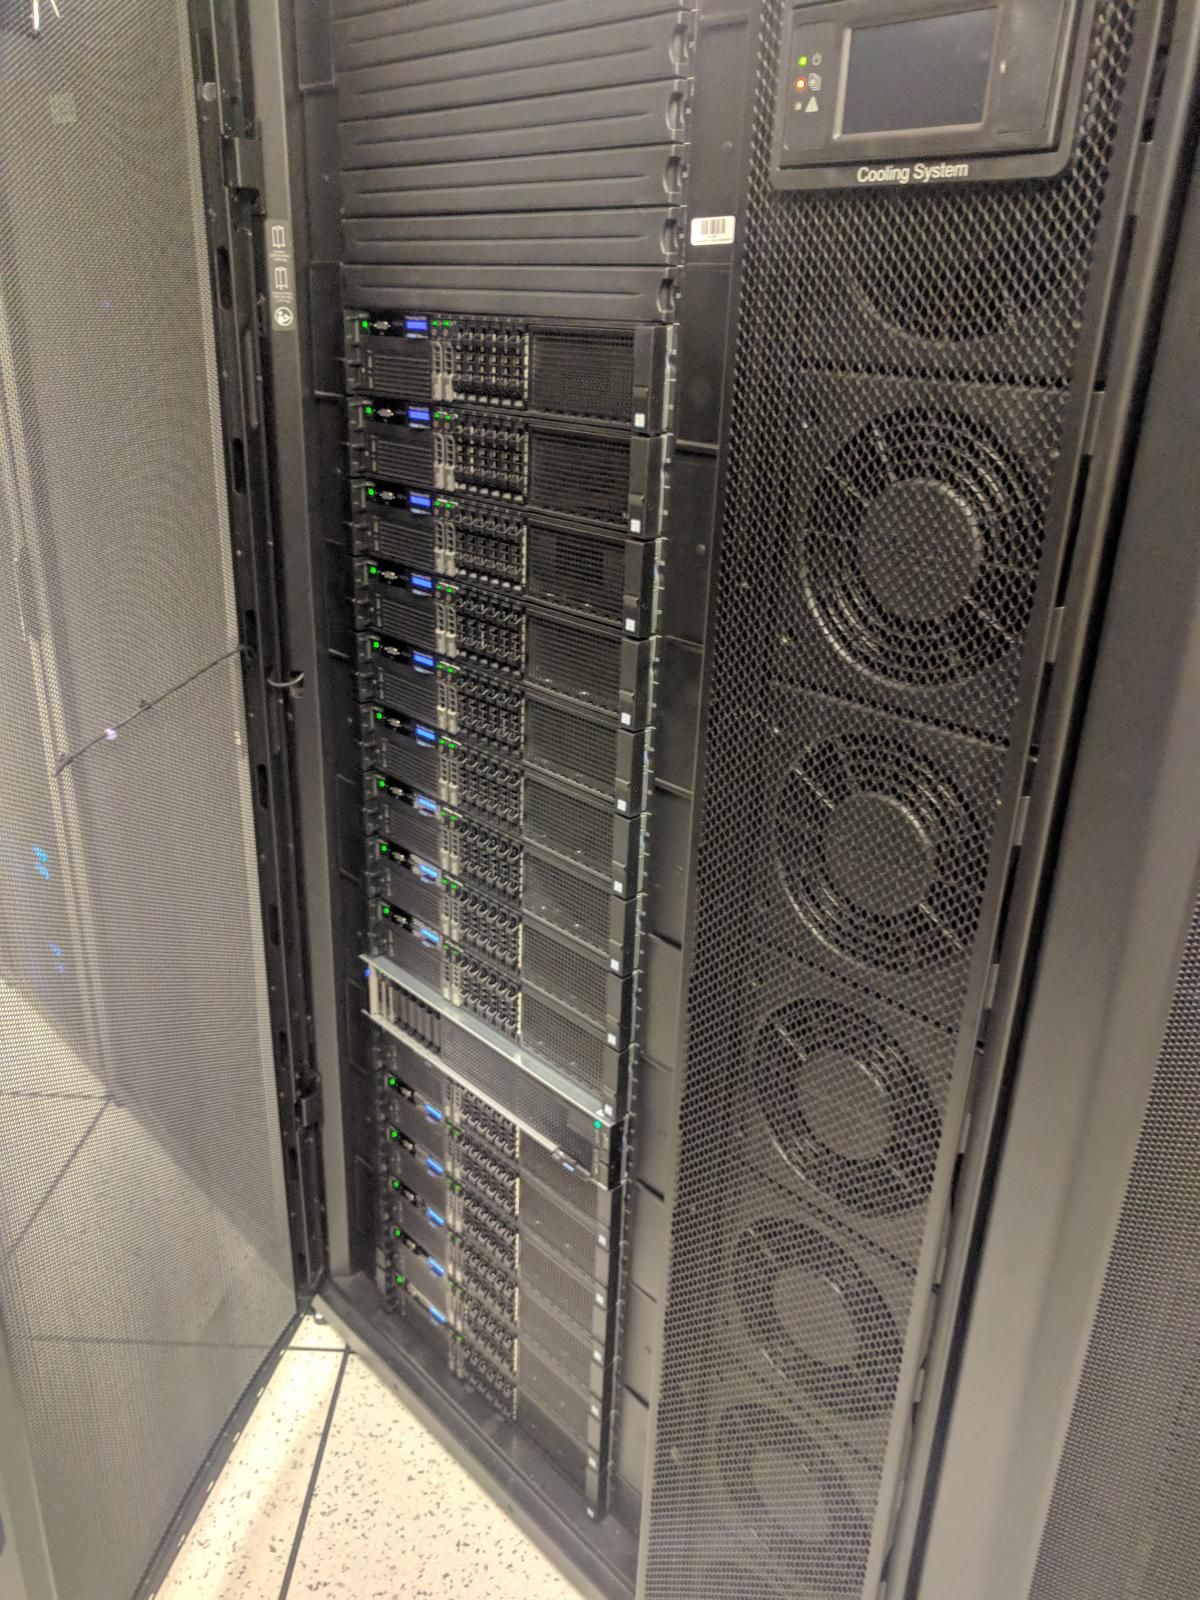 RCC data center image